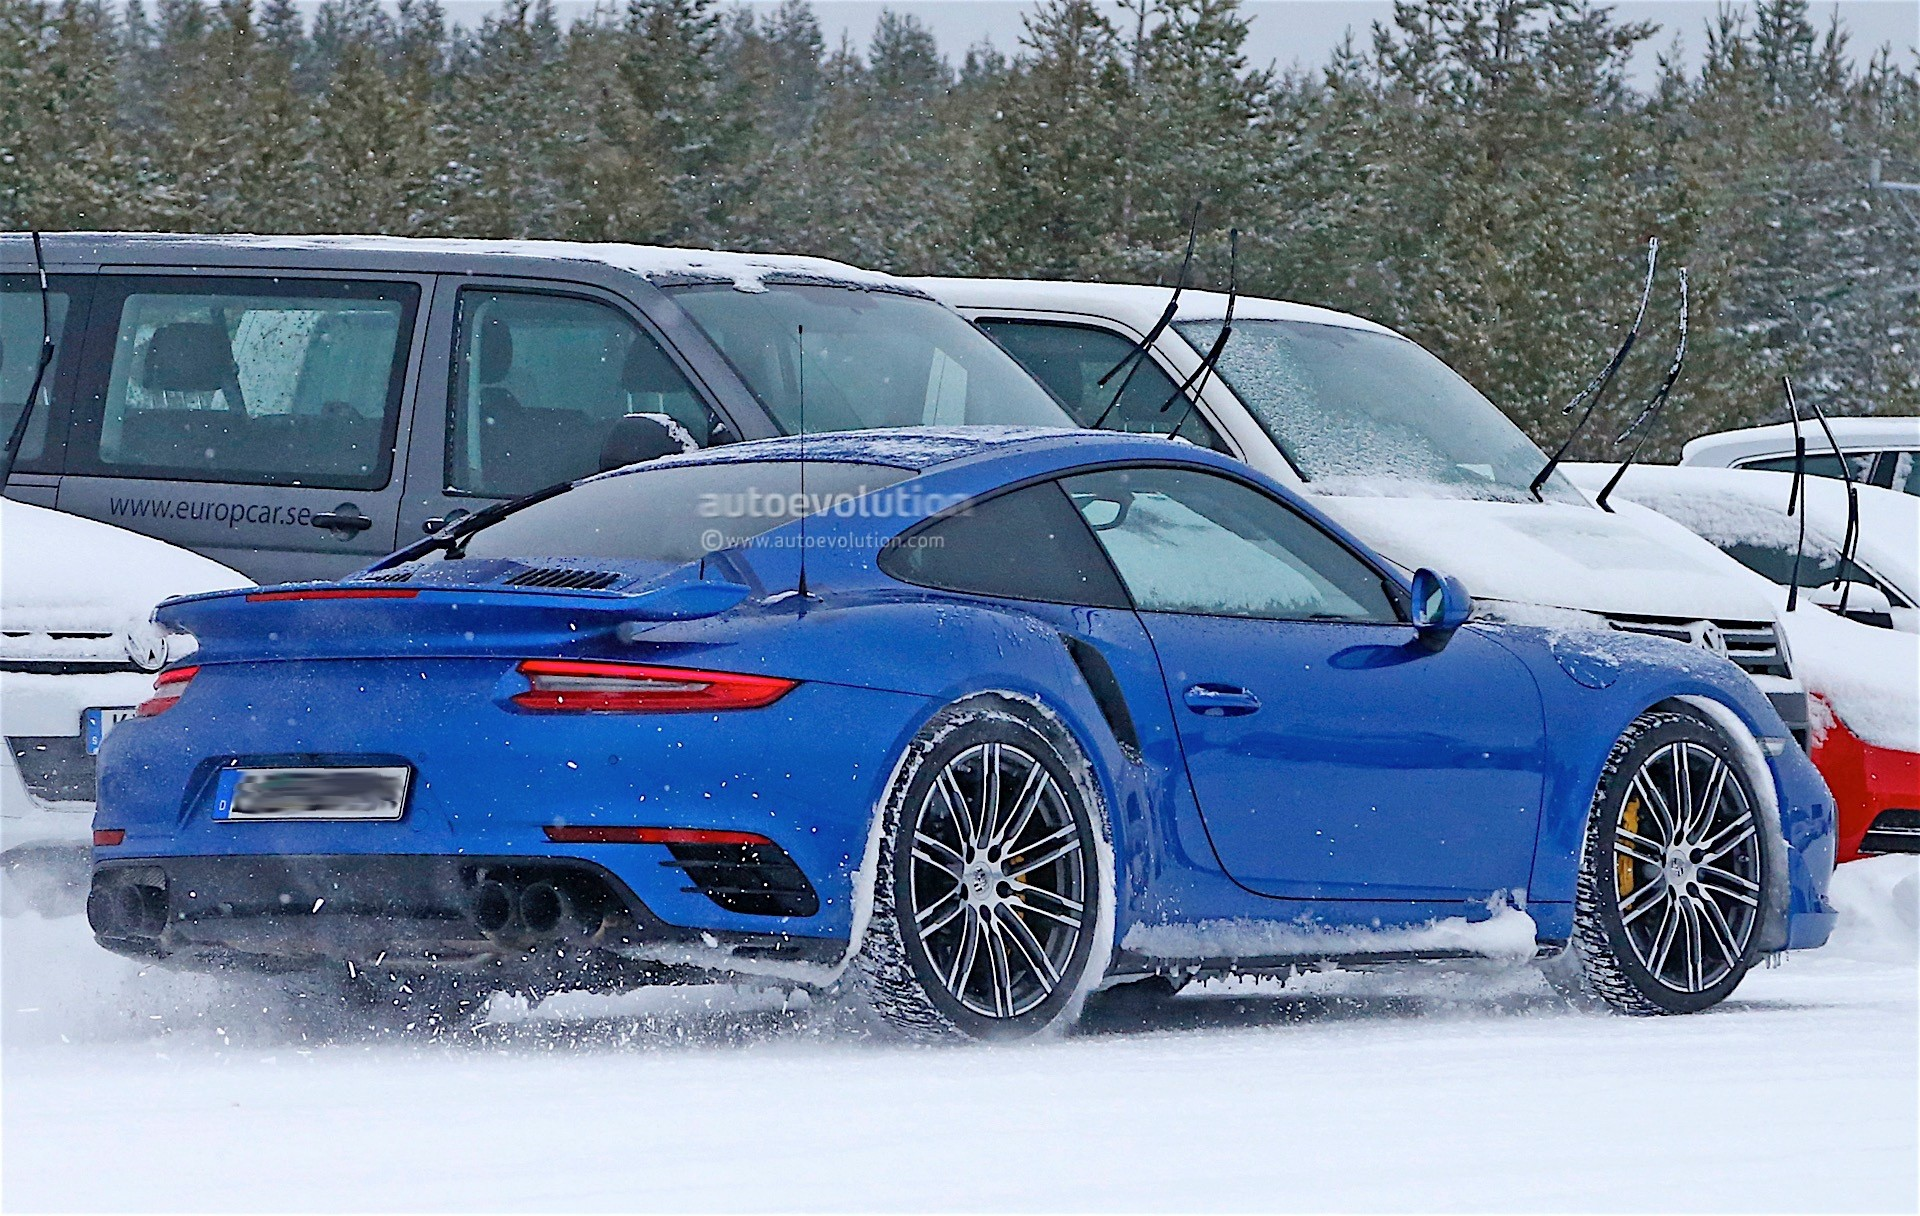 porsche-911-gt2-what-we-know-so-far_13 Interesting Porsche 911 Gt2 and Gt3 Cars Trend